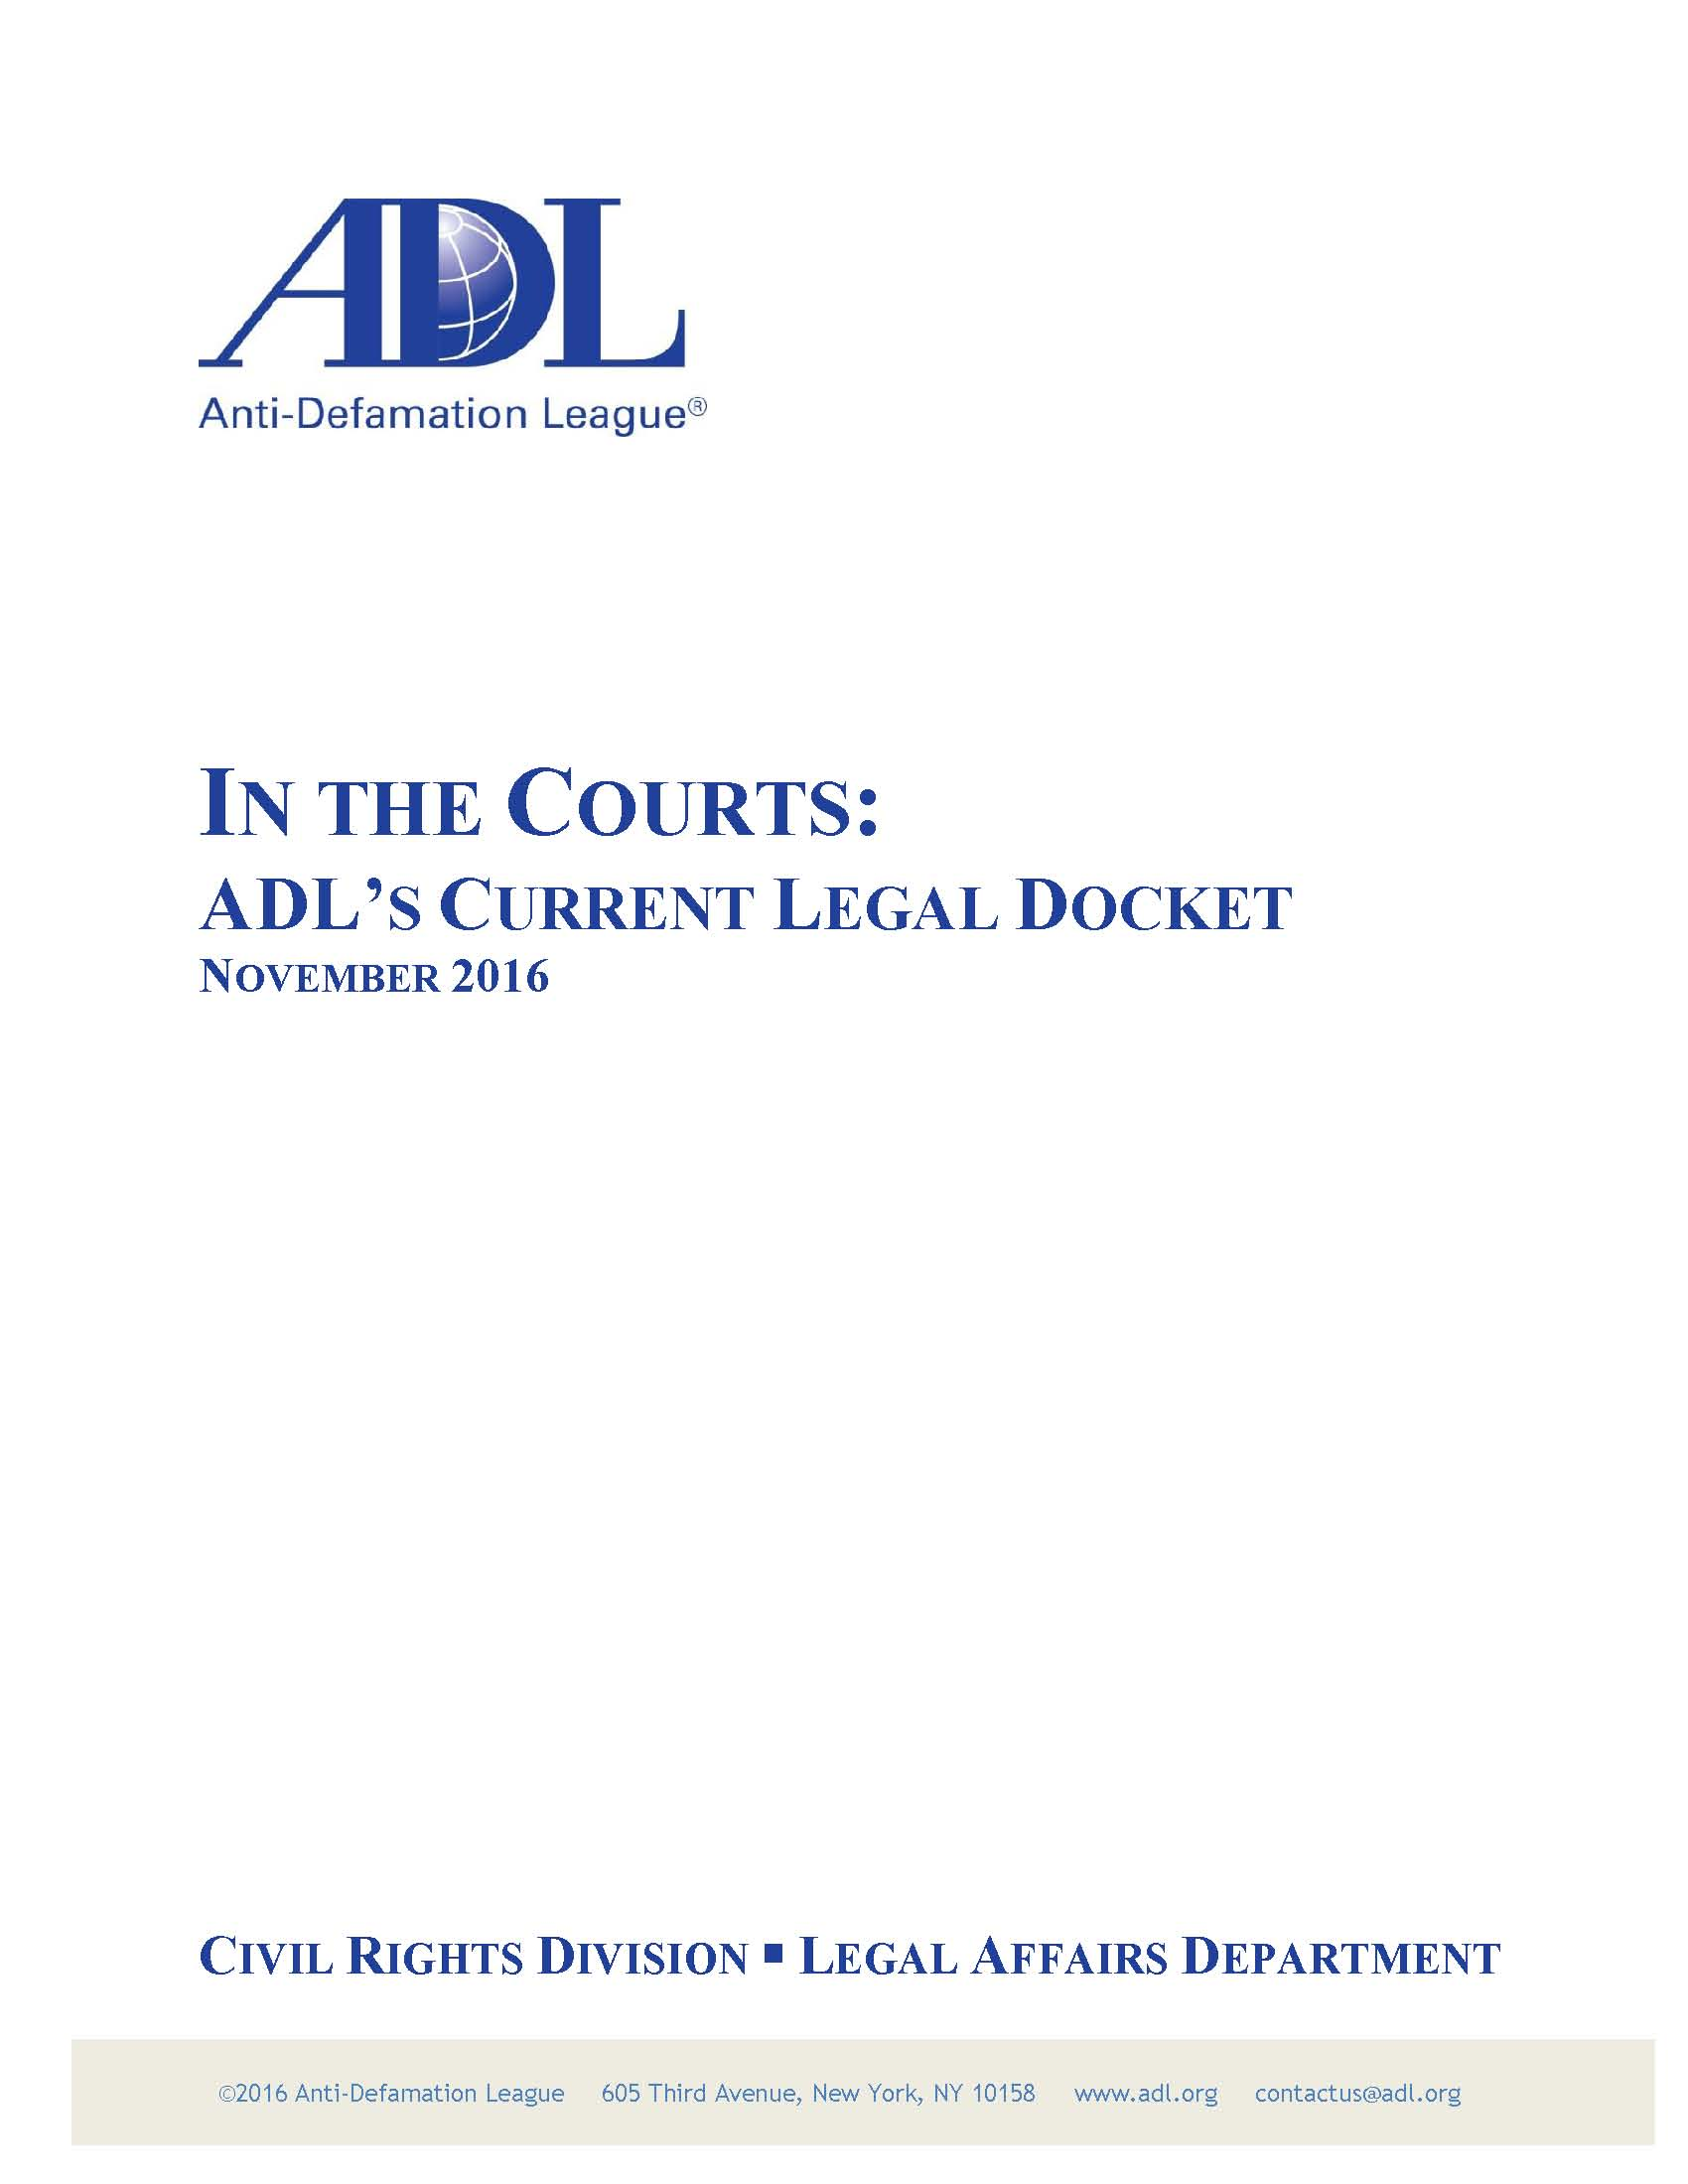 ADL in the Courts: November 2016 THUMBNAIL